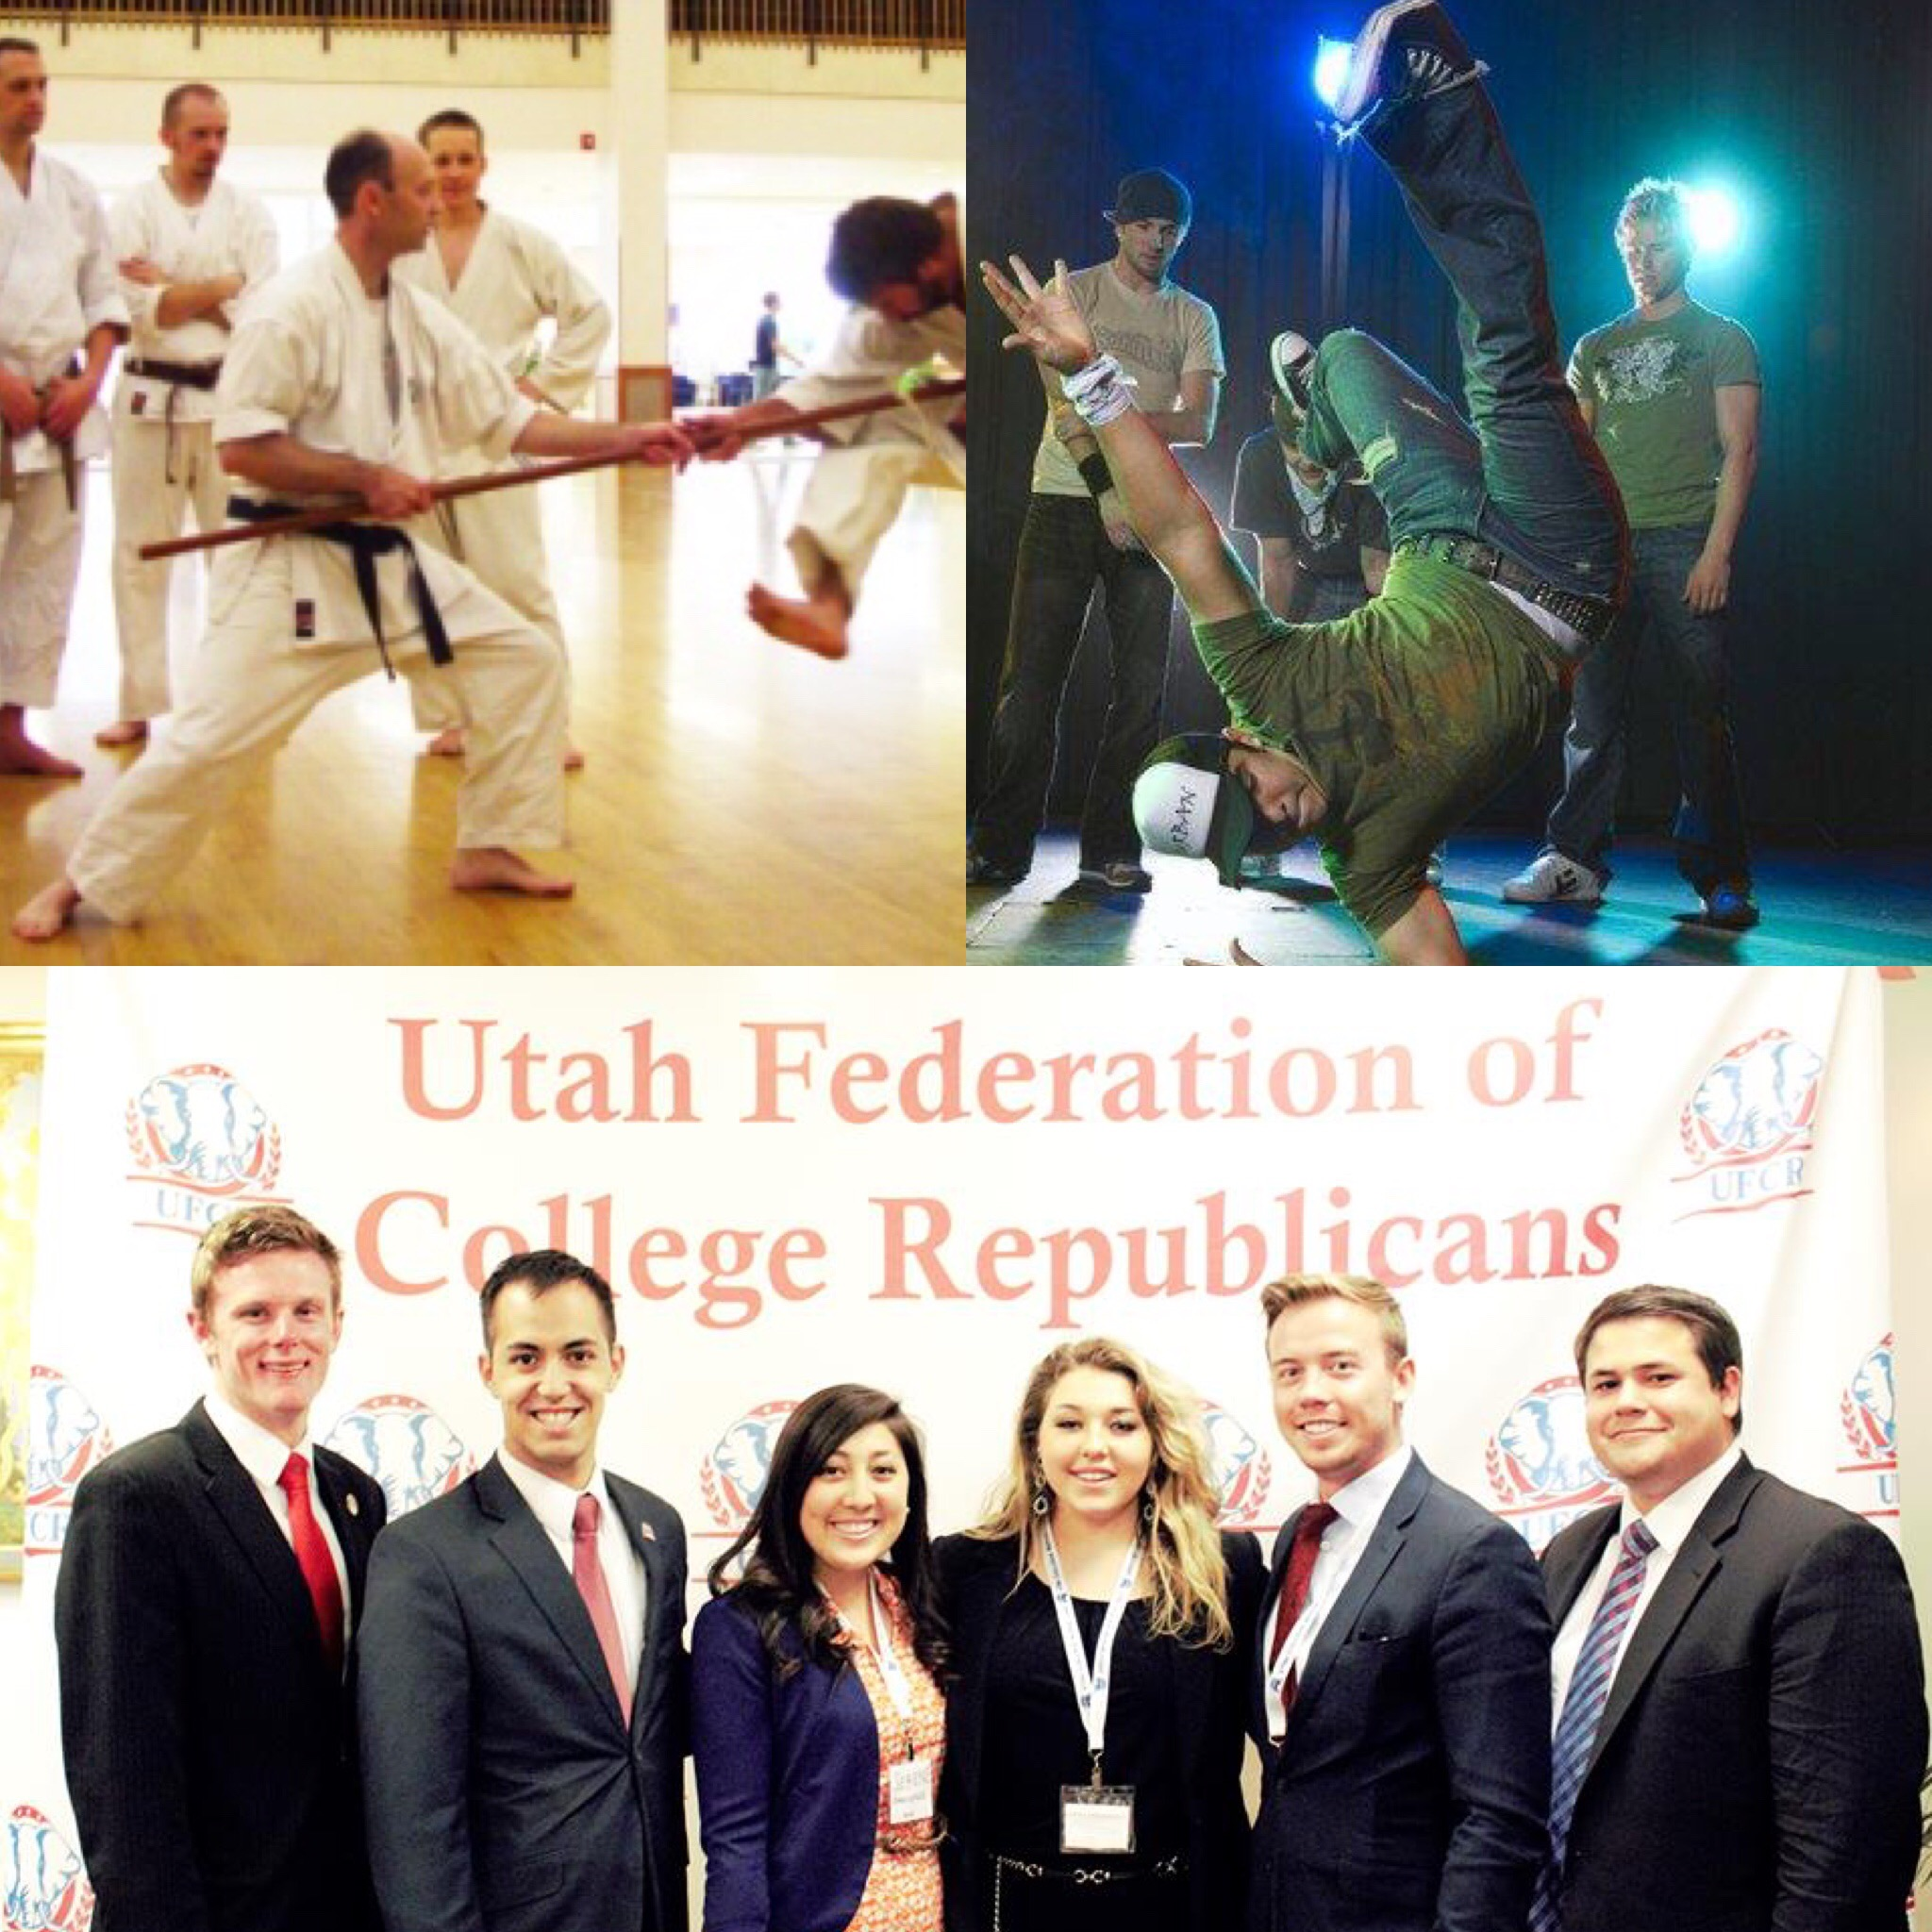 BYUSA Photo and the BYU College Republican club